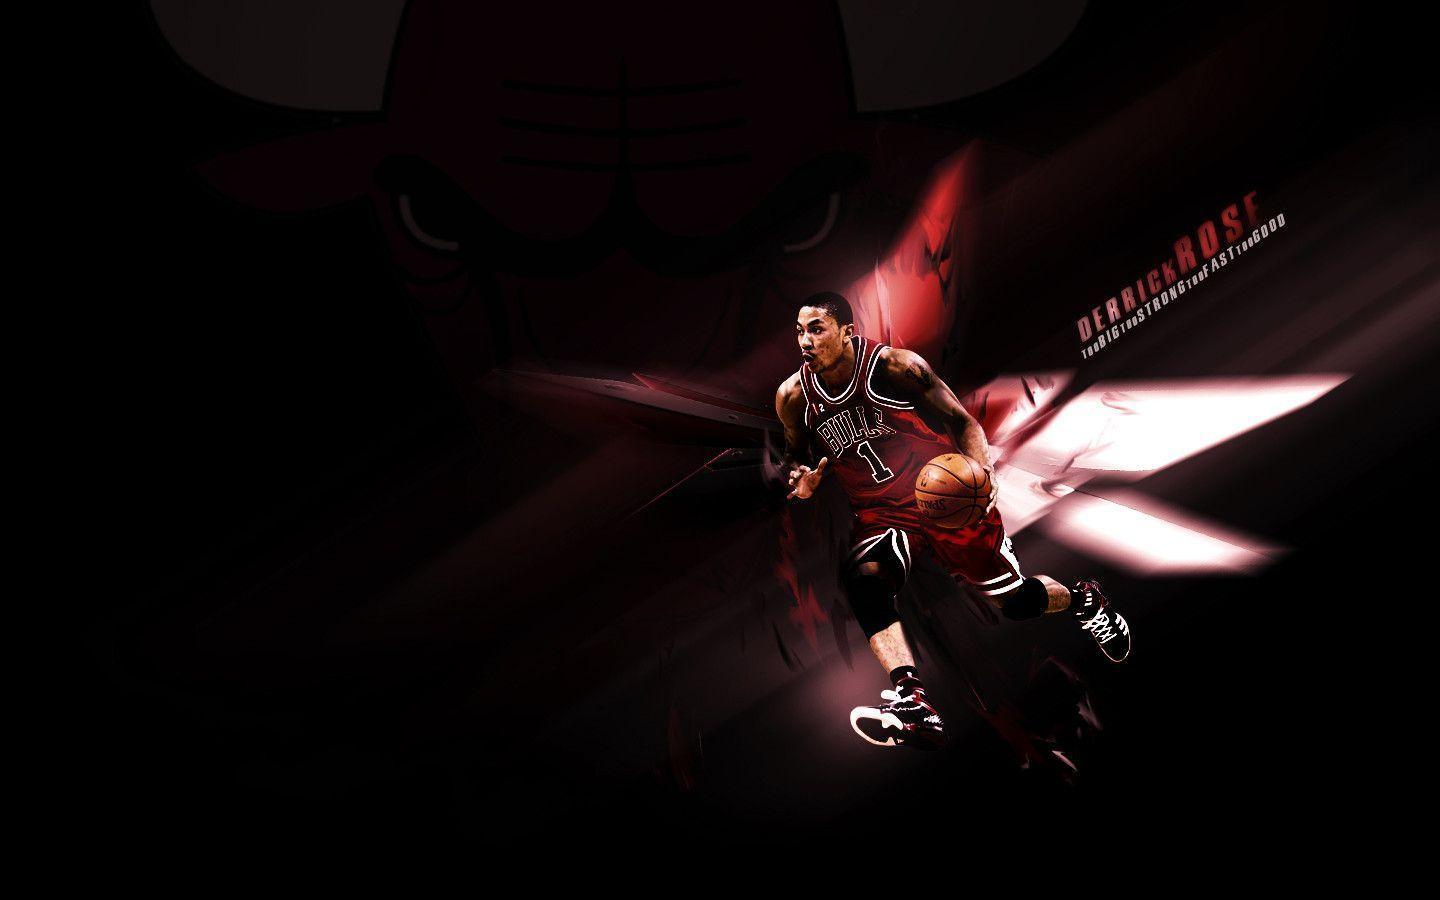 2013 Chicago Bulls Wallpaper HD 2 24499 Images HD Wallpapers ...